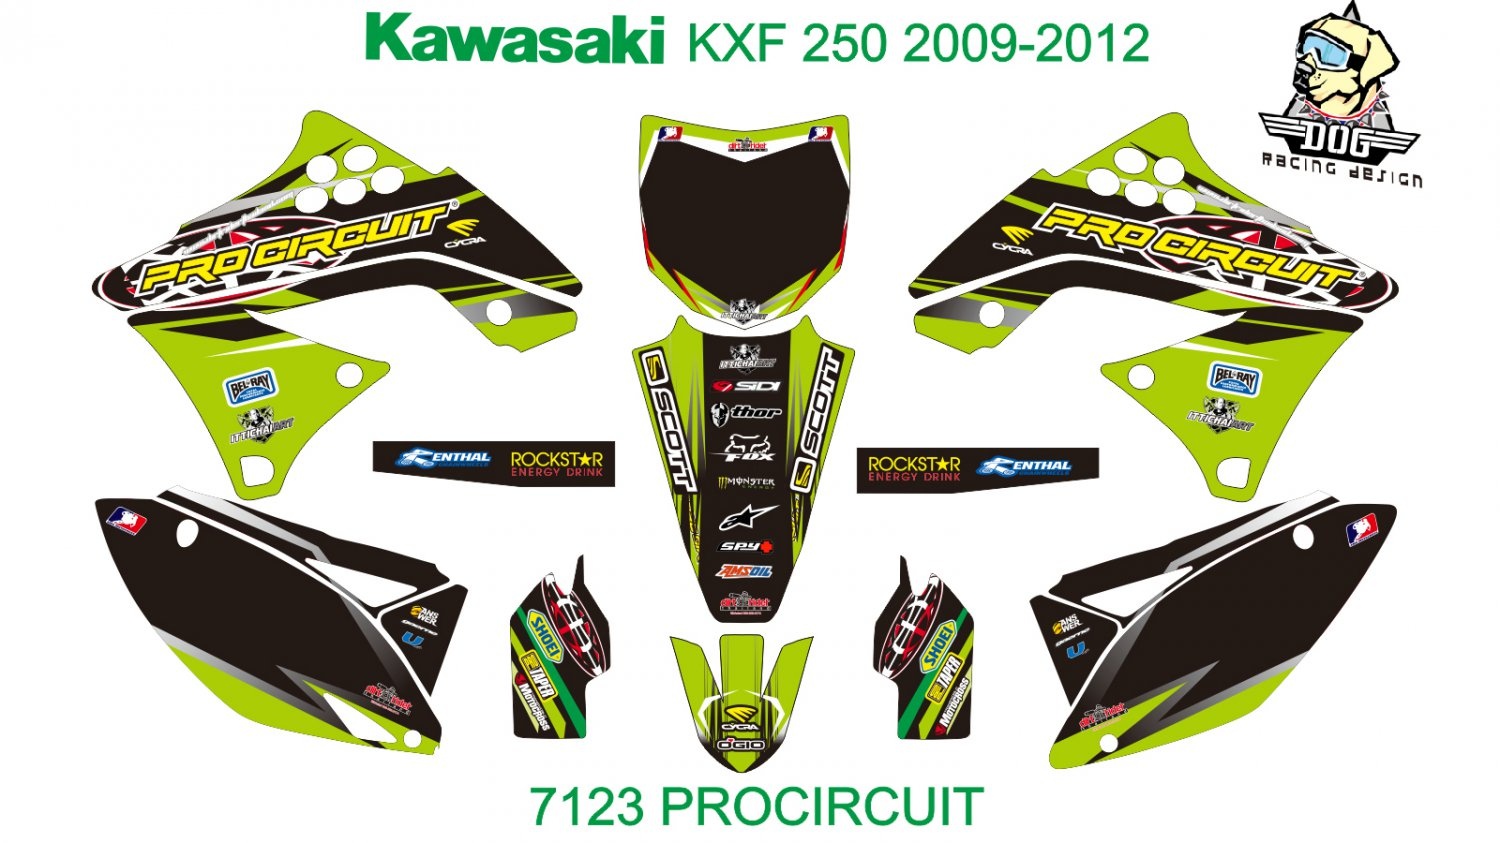 KAWASAKI KXF 250 2009-2012 GRAPHIC DECAL KIT CODE.7123